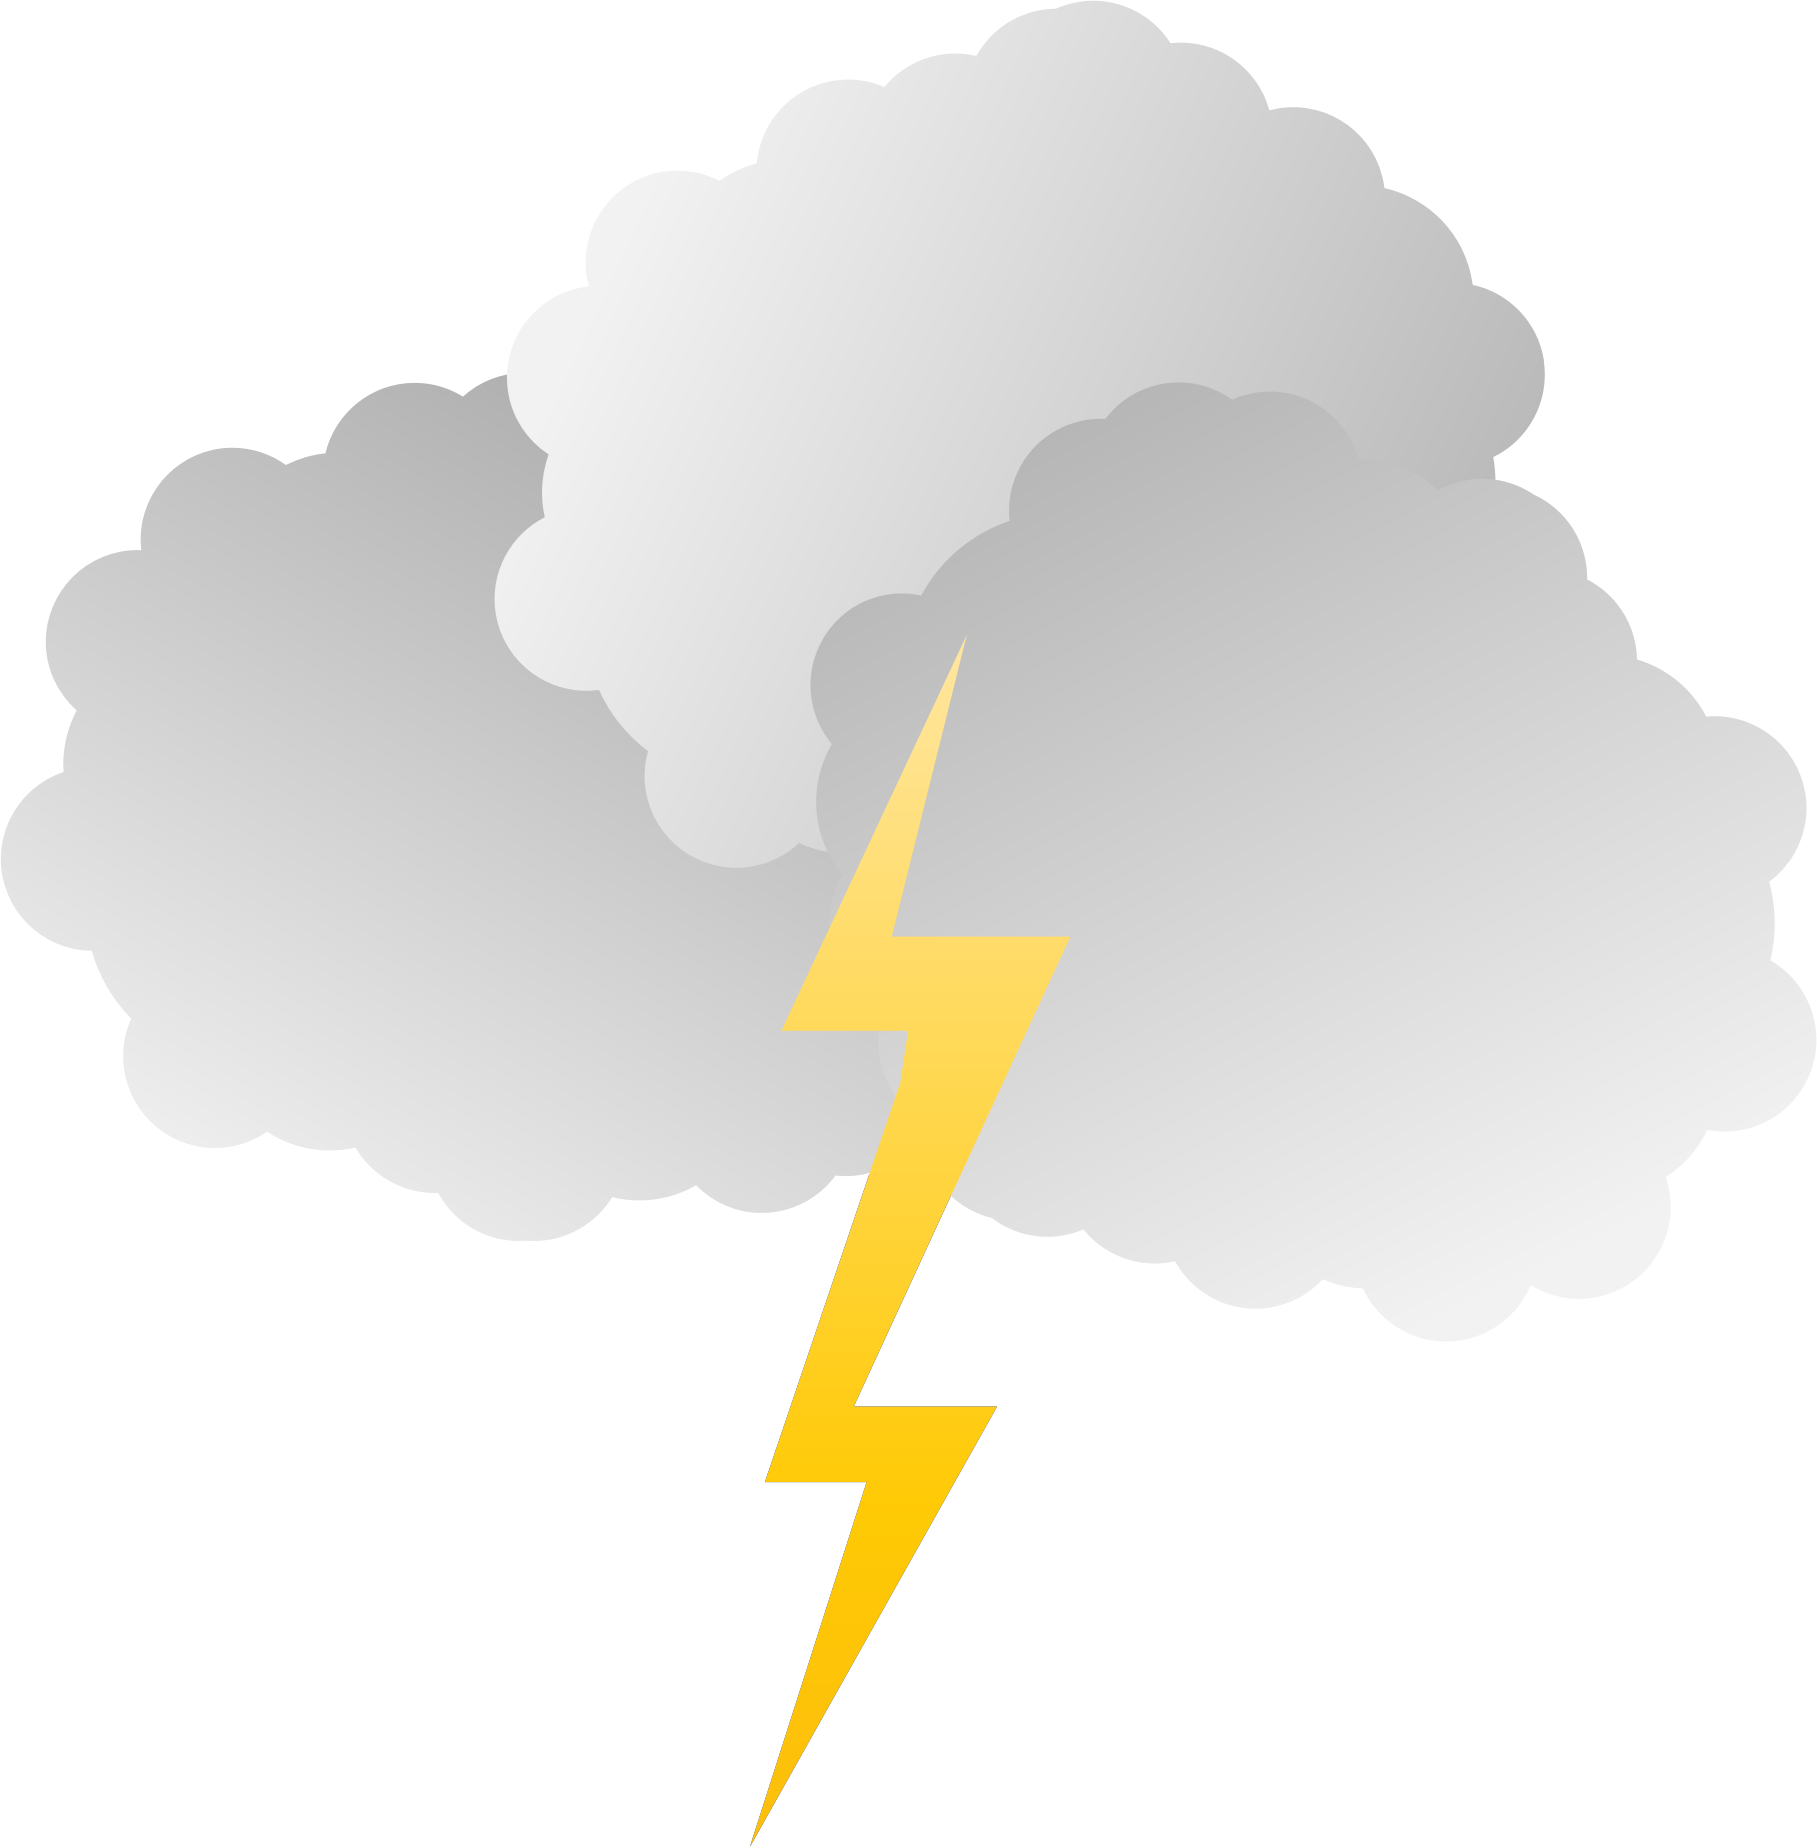 Clipart and big image. Lightning clouds png banner library library